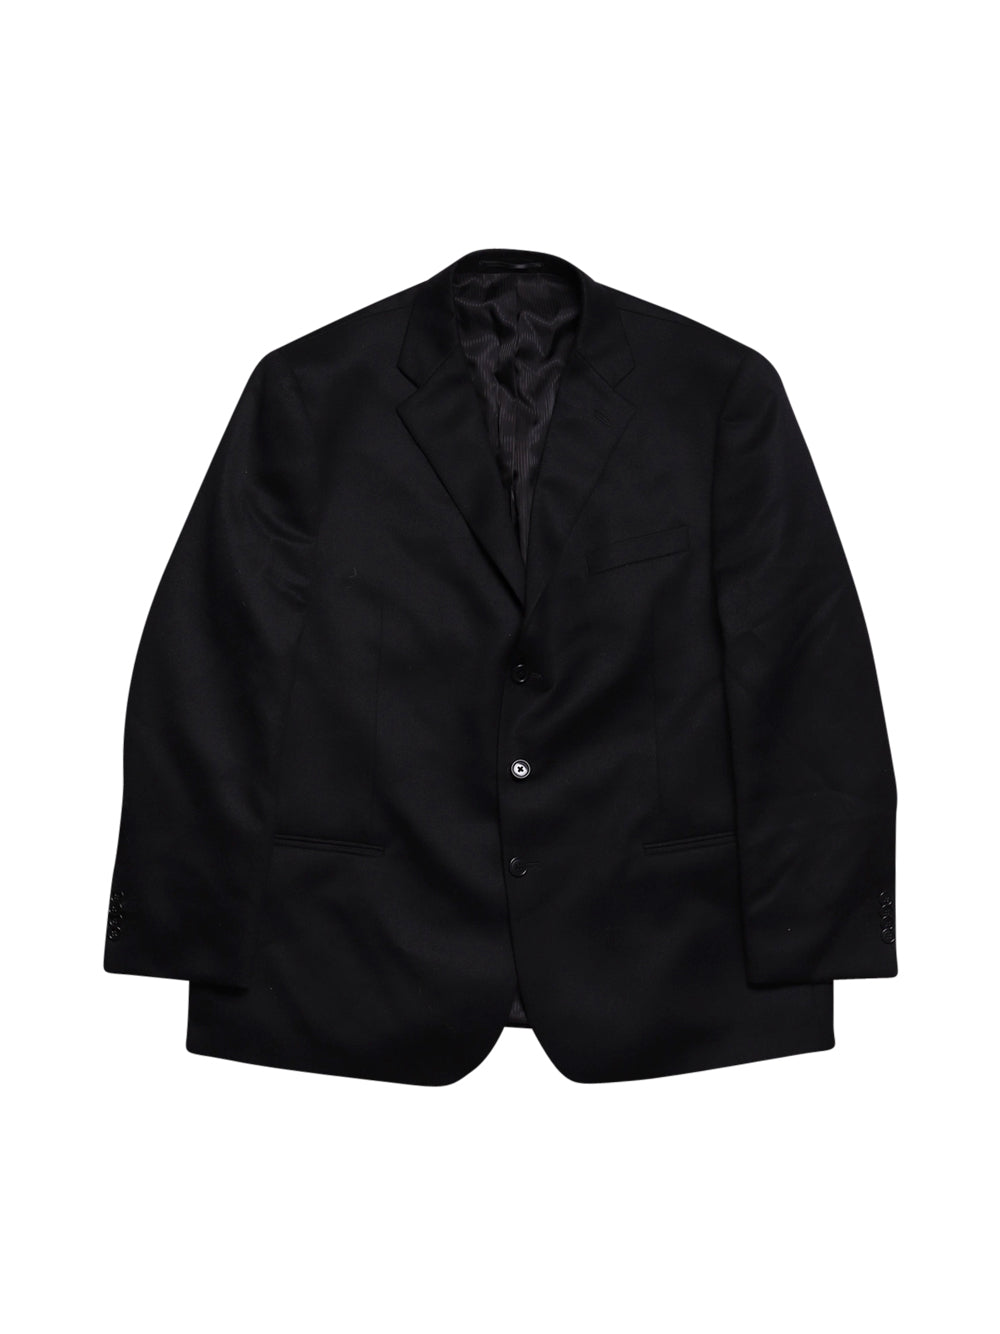 Front photo of Preloved Lanificio Campore Black Man's suit - size 48/XXXL